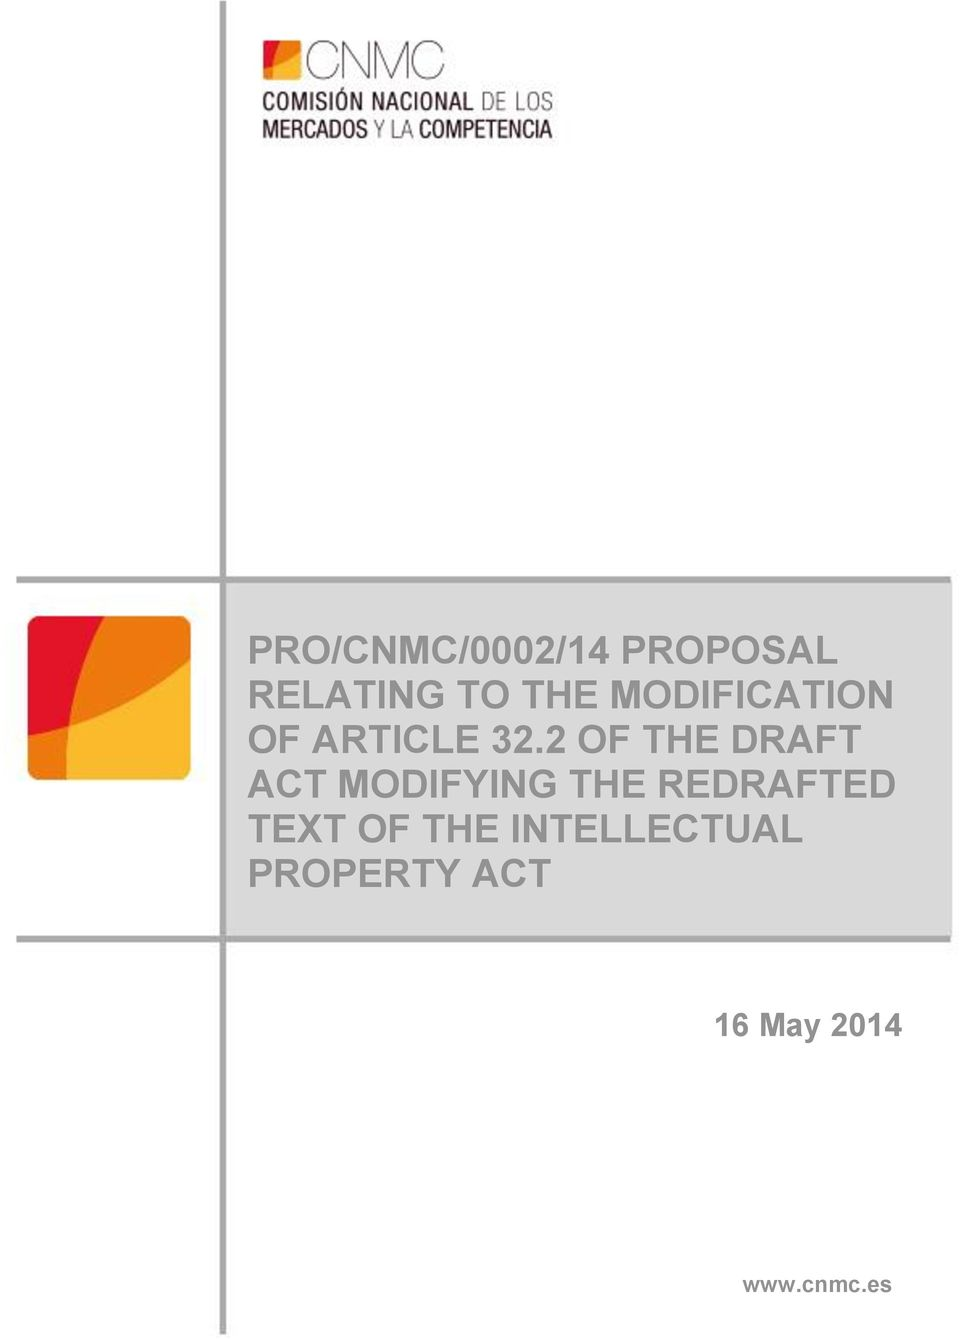 2 OF THE DRAFT ACT MODIFYING THE REDRAFTED